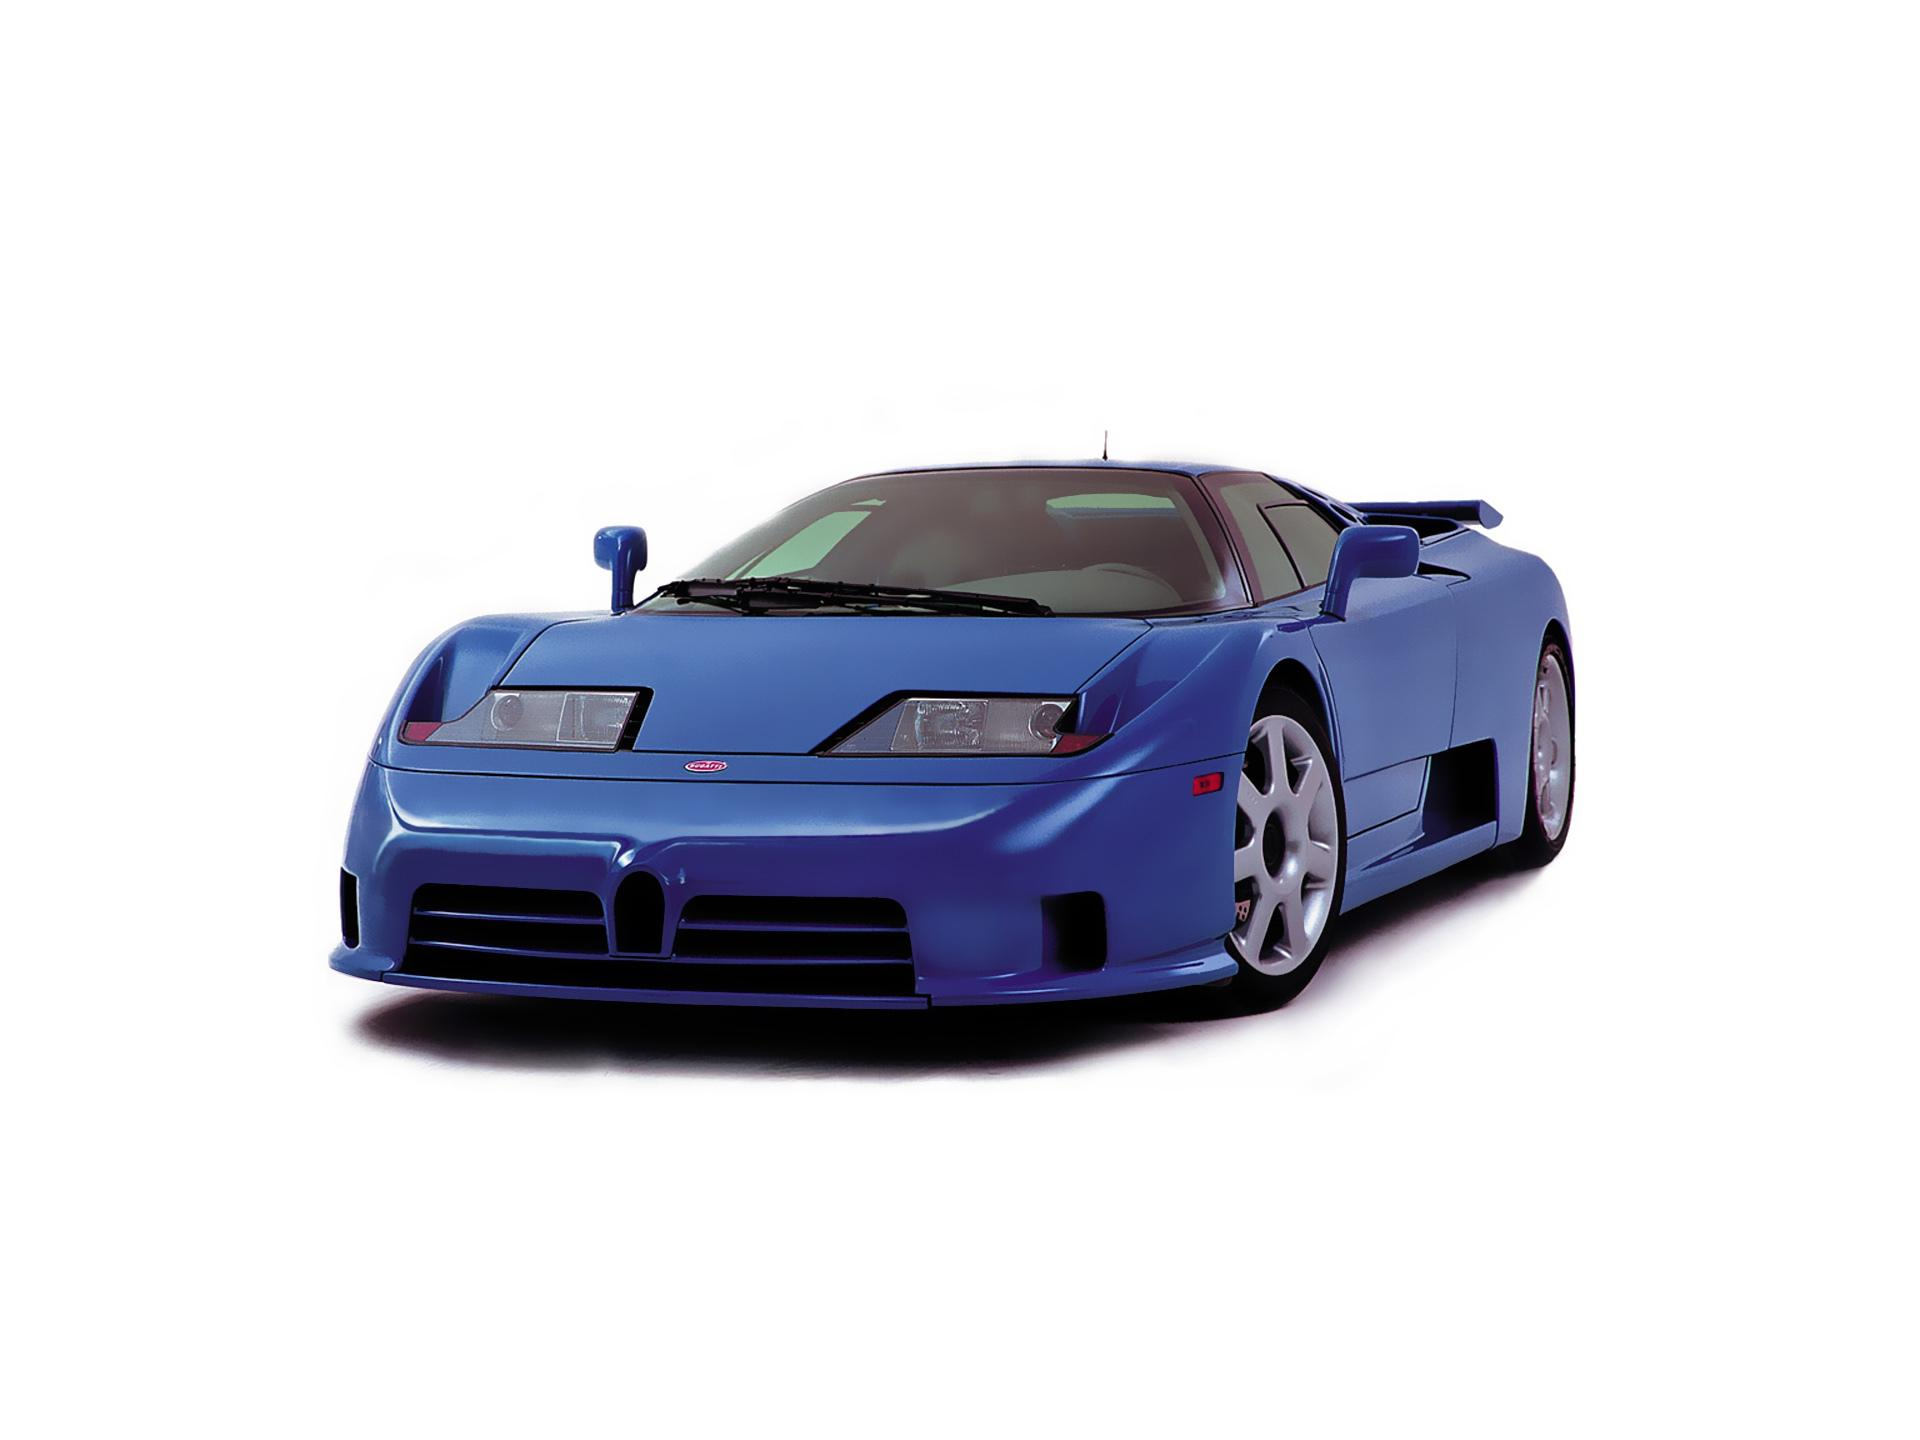 bugatti eb110 gt wallpaper hd download. Black Bedroom Furniture Sets. Home Design Ideas